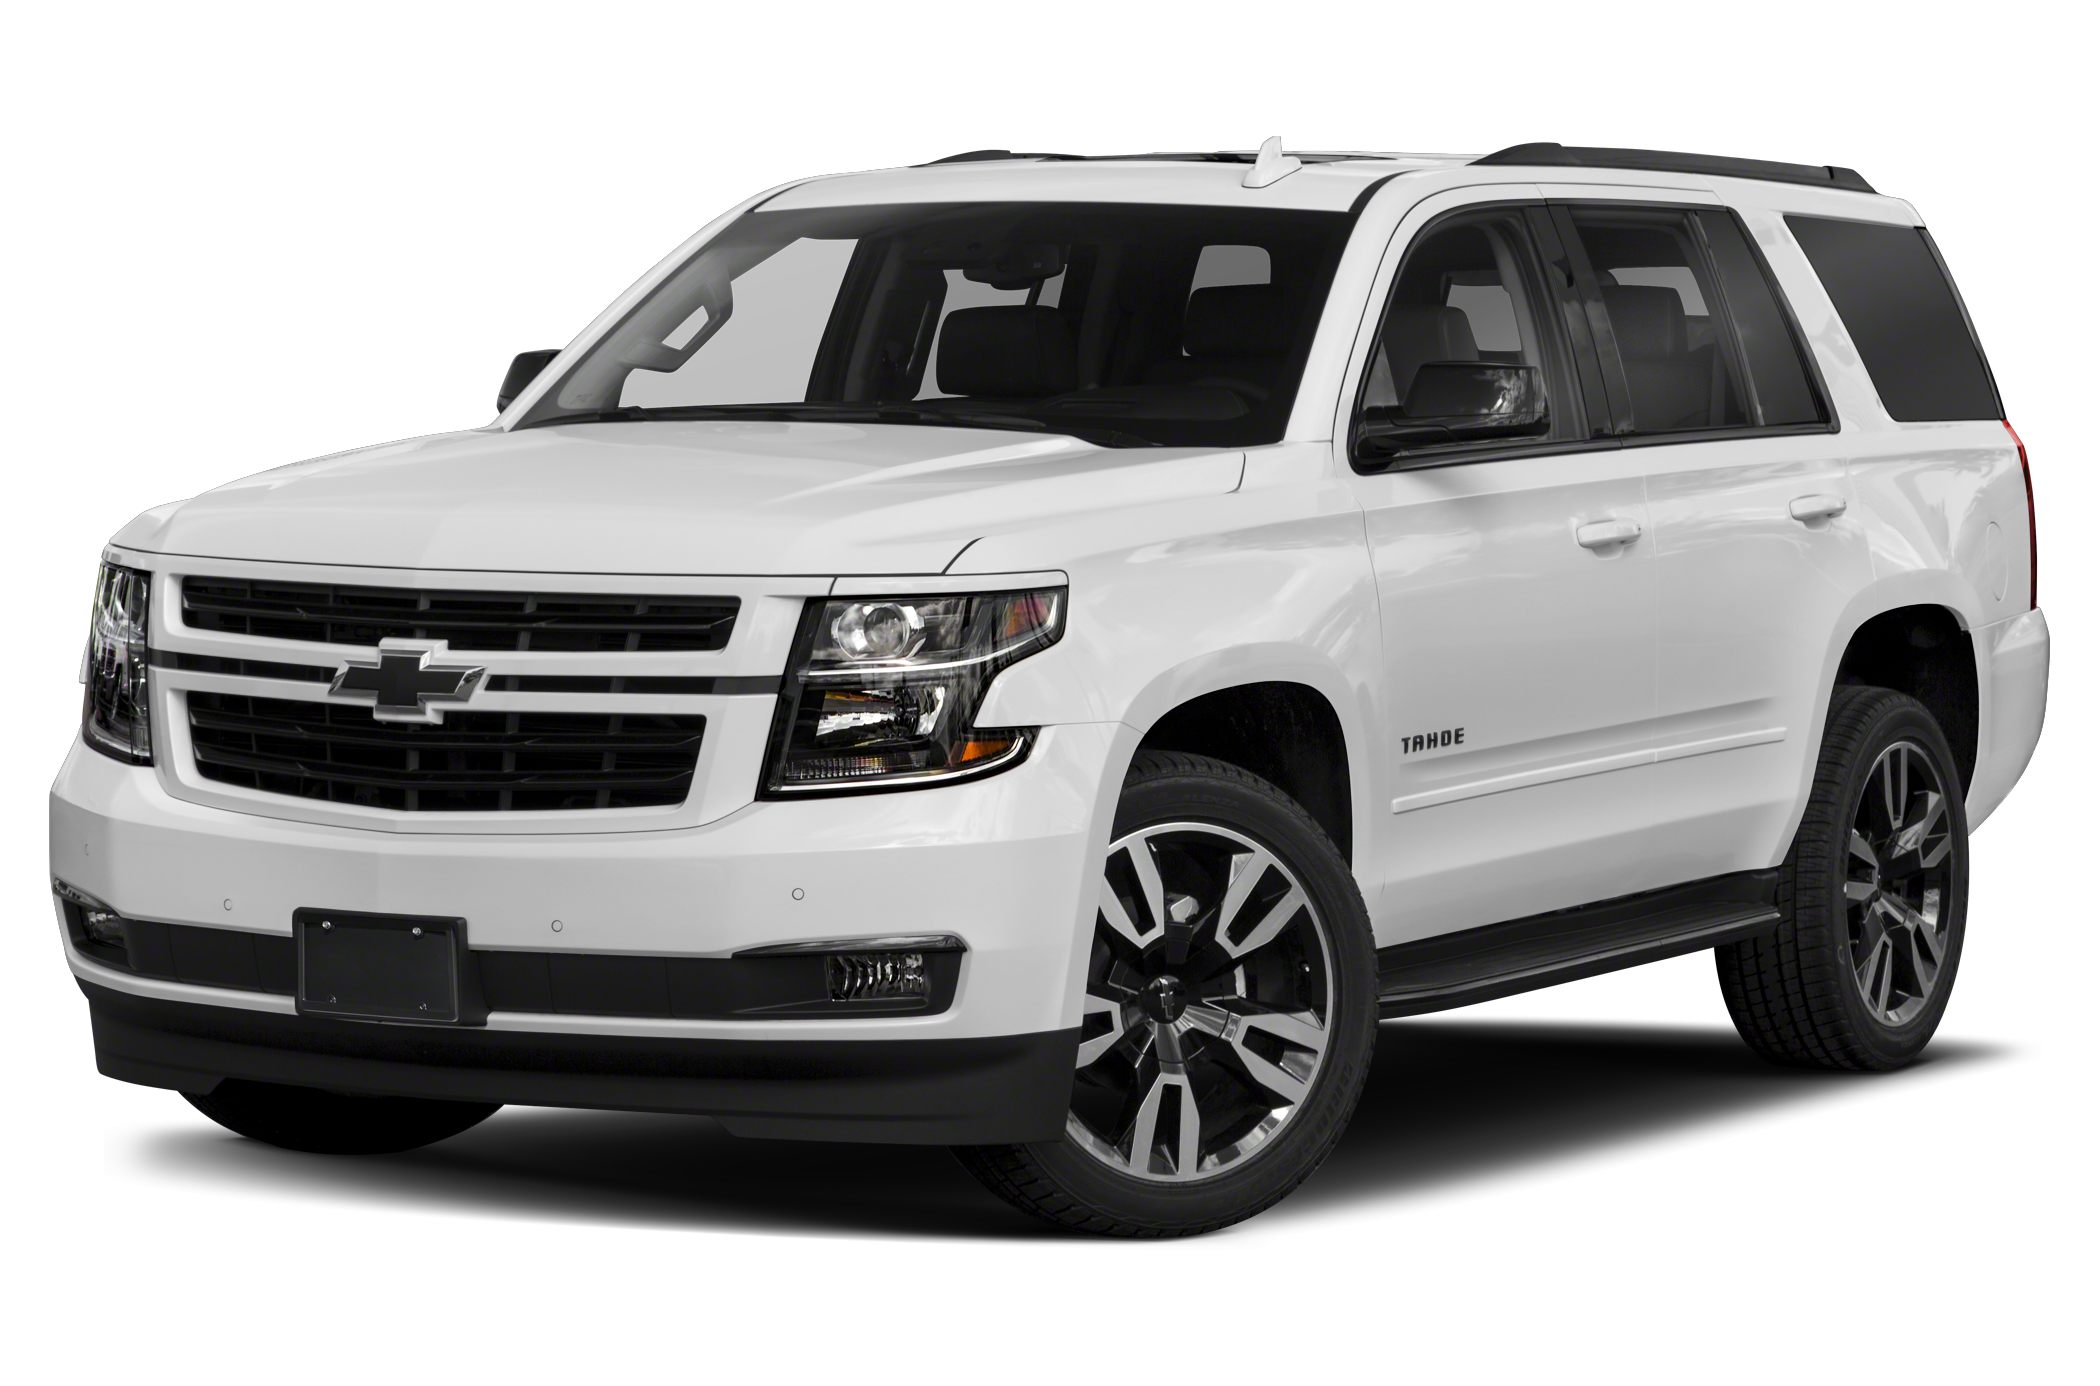 Clipart chevy tahoe truck svg download 2020 Chevrolet Tahoe Premier 4x4 Specs and Prices svg download